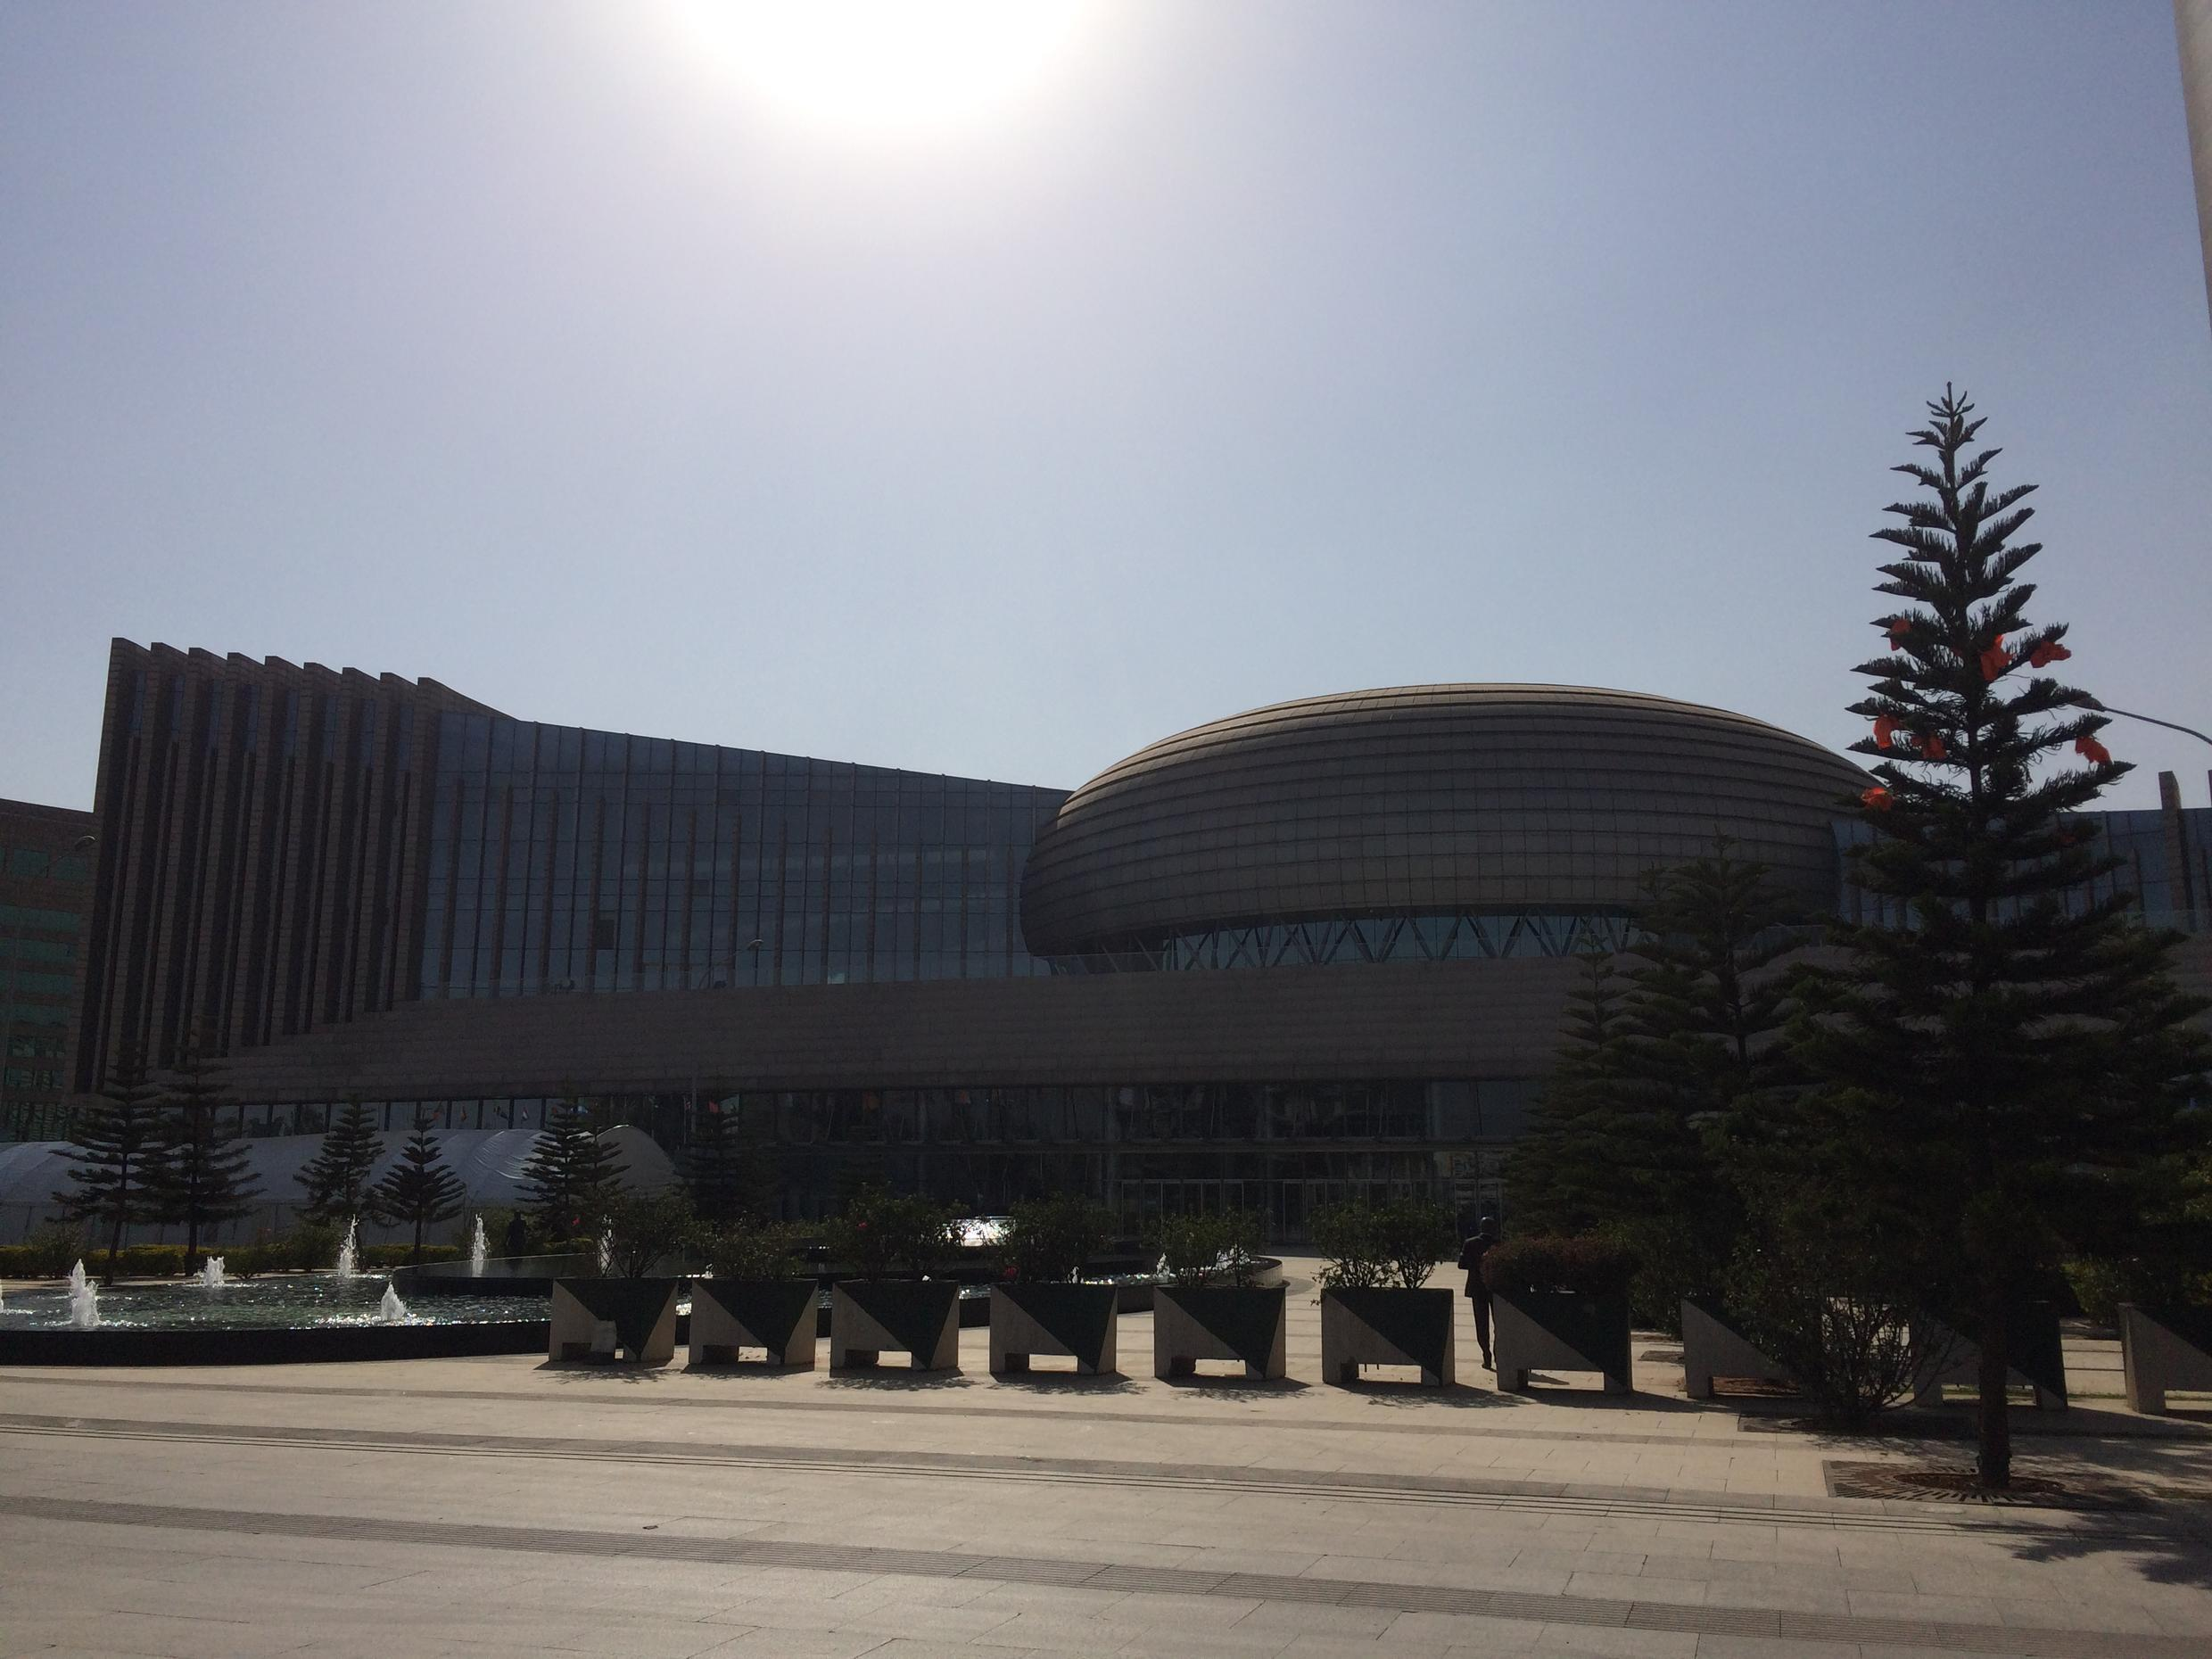 The African Union headquarters